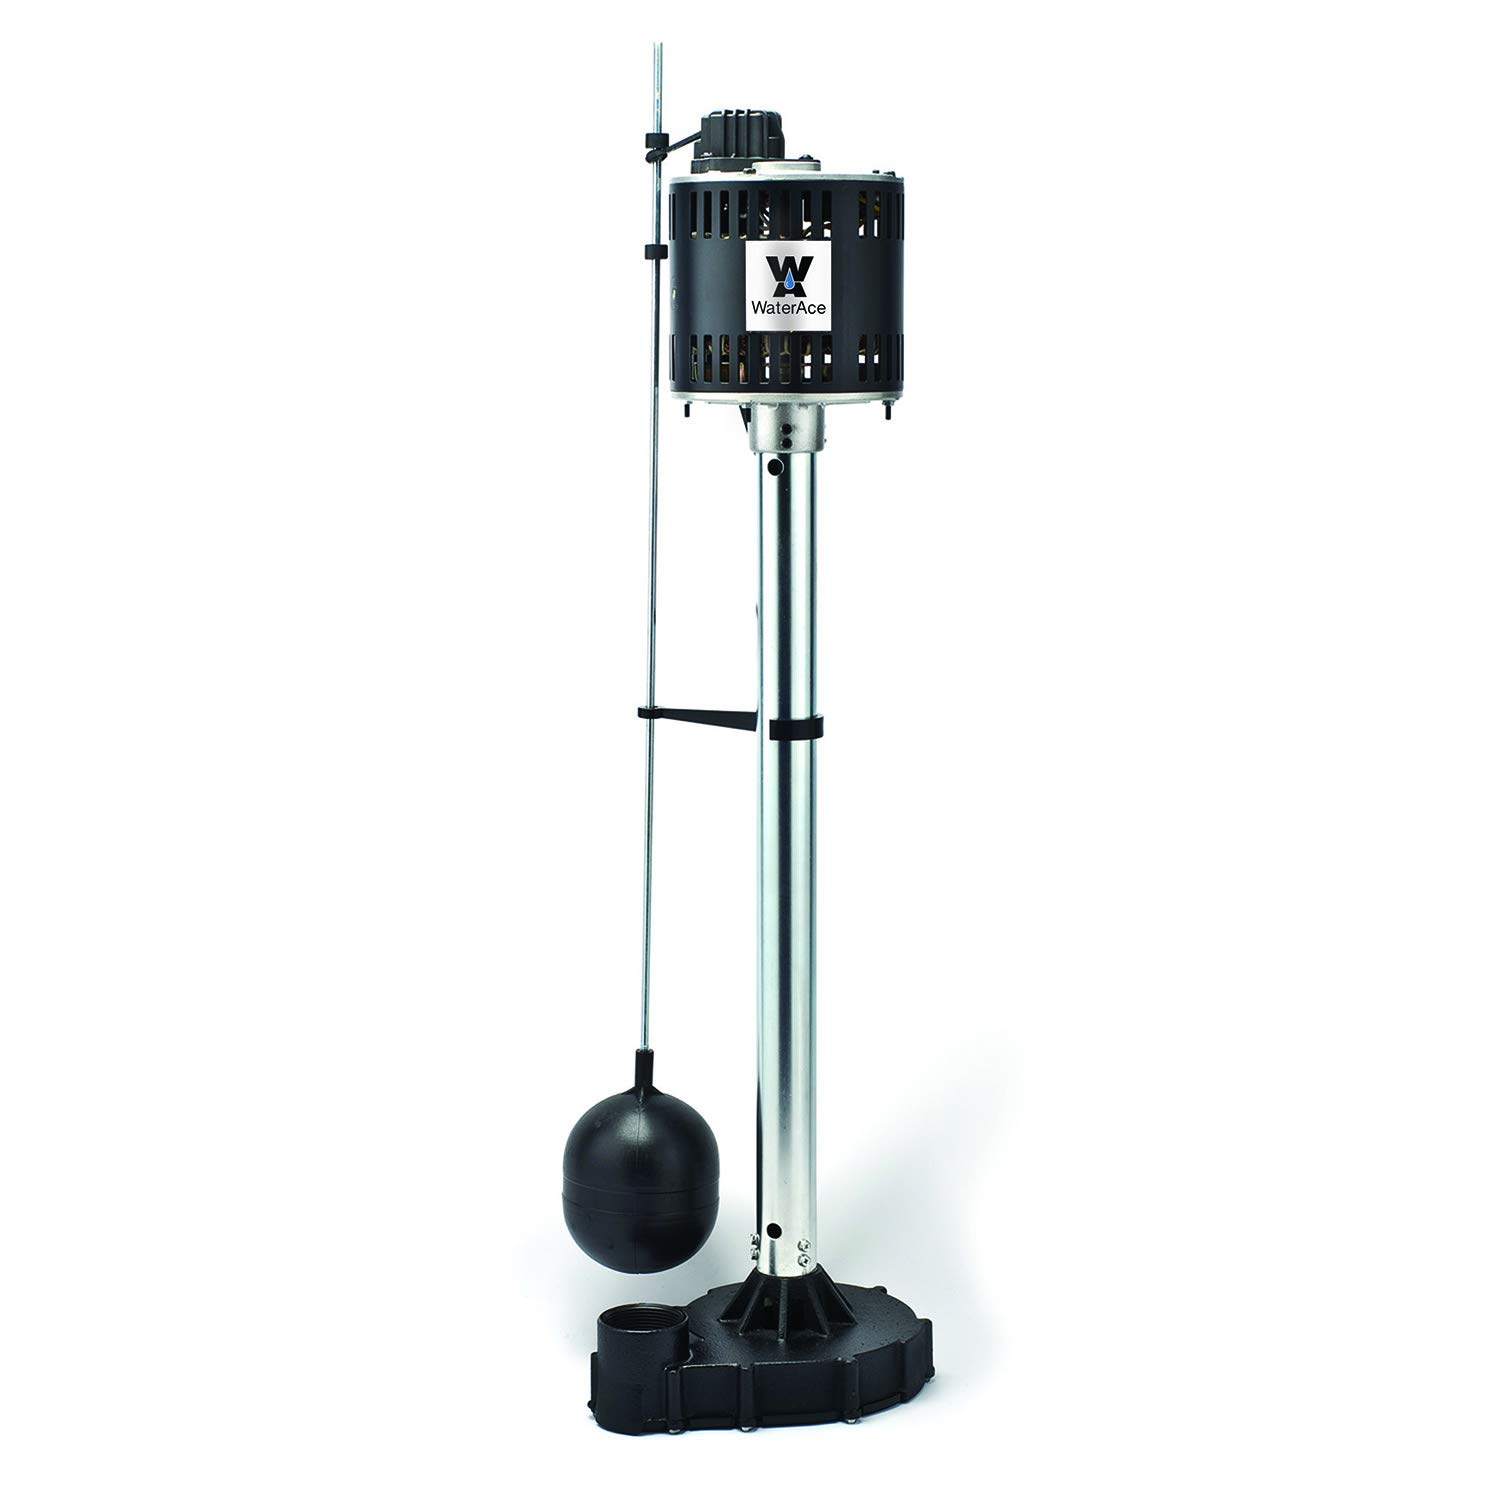 WaterAce WA50CPED Pedestal Pump, Black by WaterAce